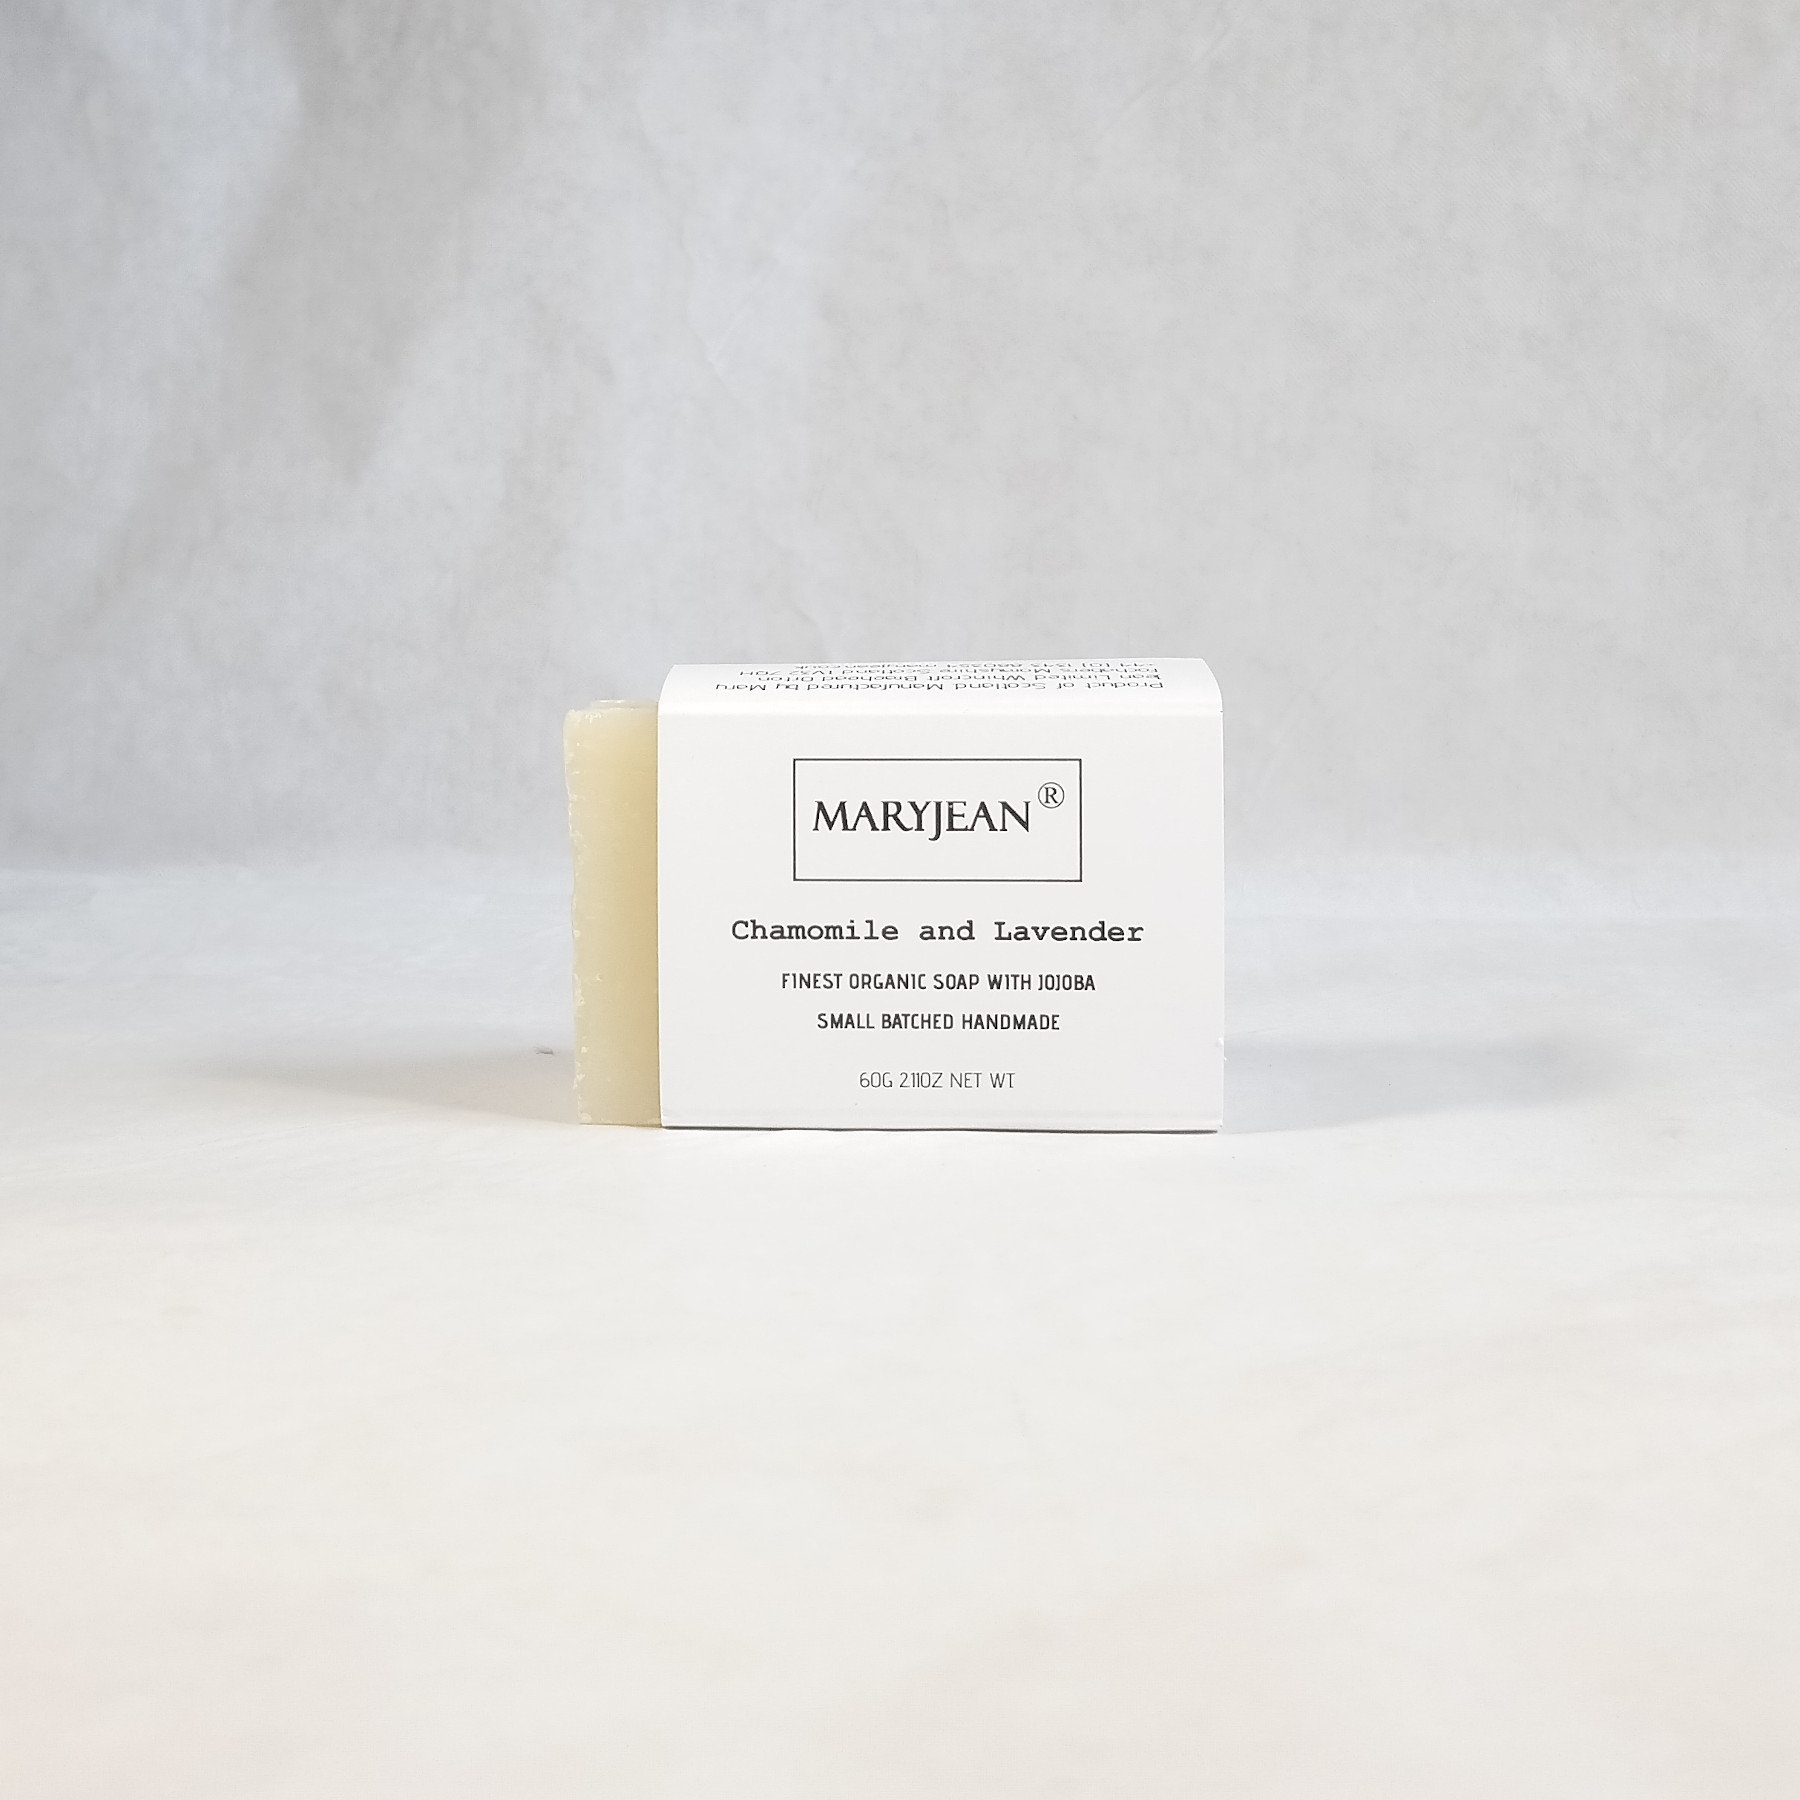 Travel size Organic Scottish Chamomile Lavender Facial Cleansing Soap Handmade with Jojoba An excellent choice for treating sun burnt skin this summer this bar of soap is sensitive enough for every day use with Jojoba for healthier skin